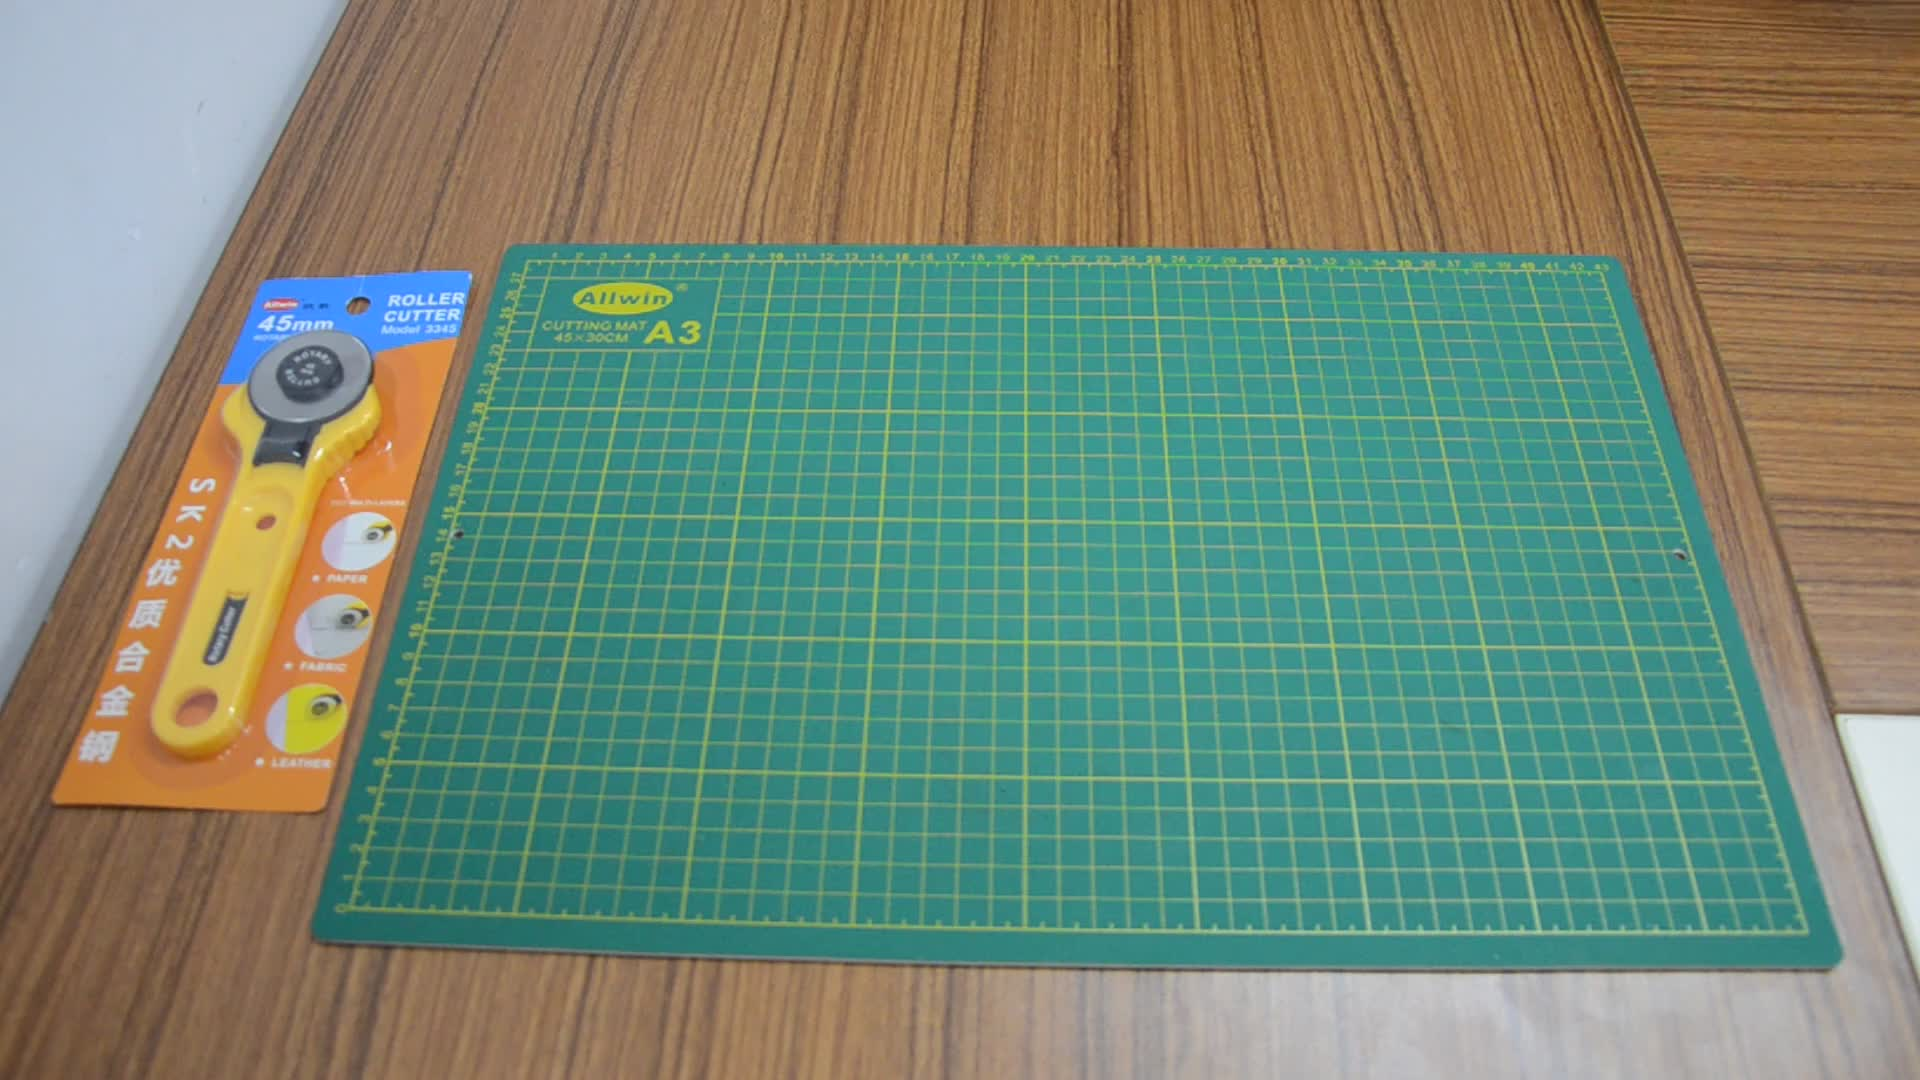 Professional rotary cutting mat set factory produce self healing cutting mat good price  cutting board for crafts